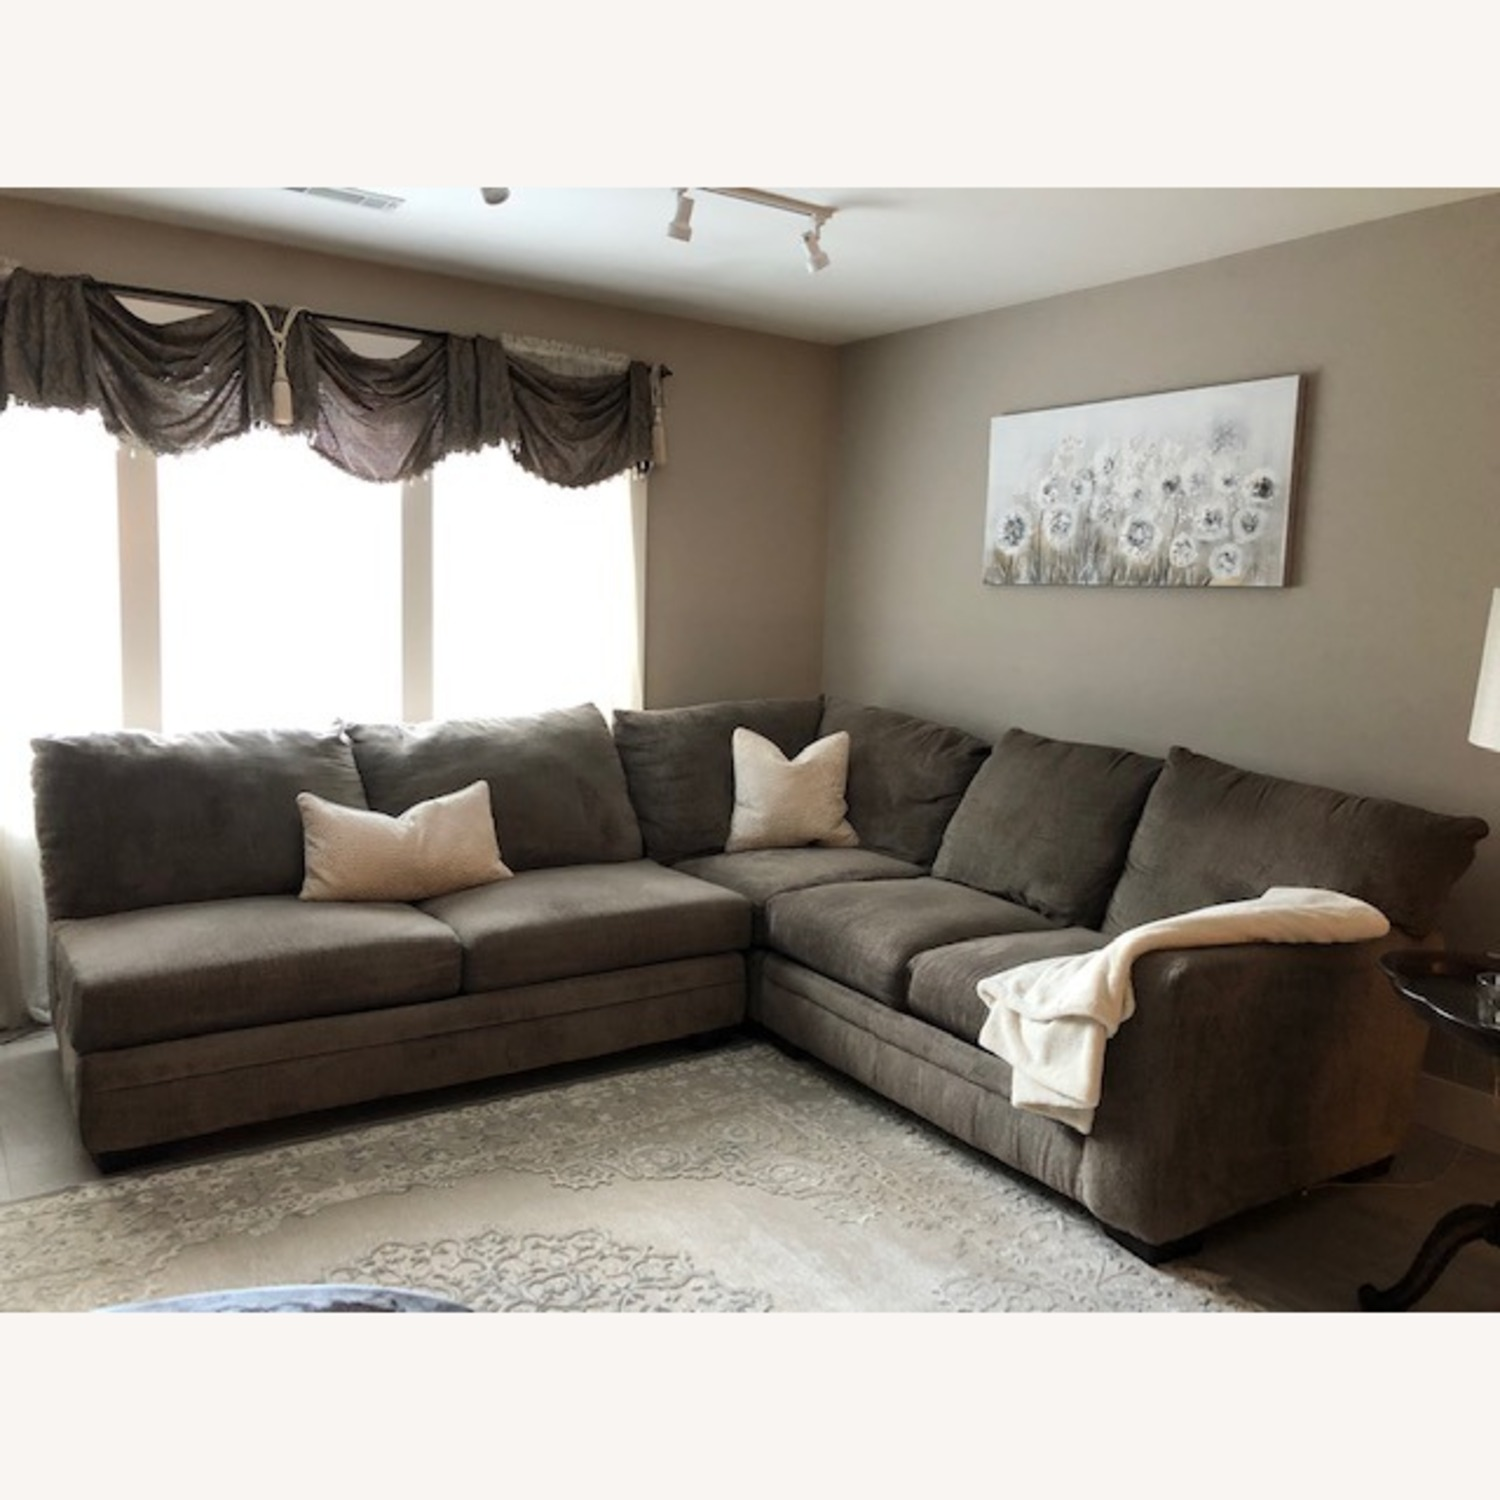 Bob's Discount Furniture 2 Piece Sectional - image-1